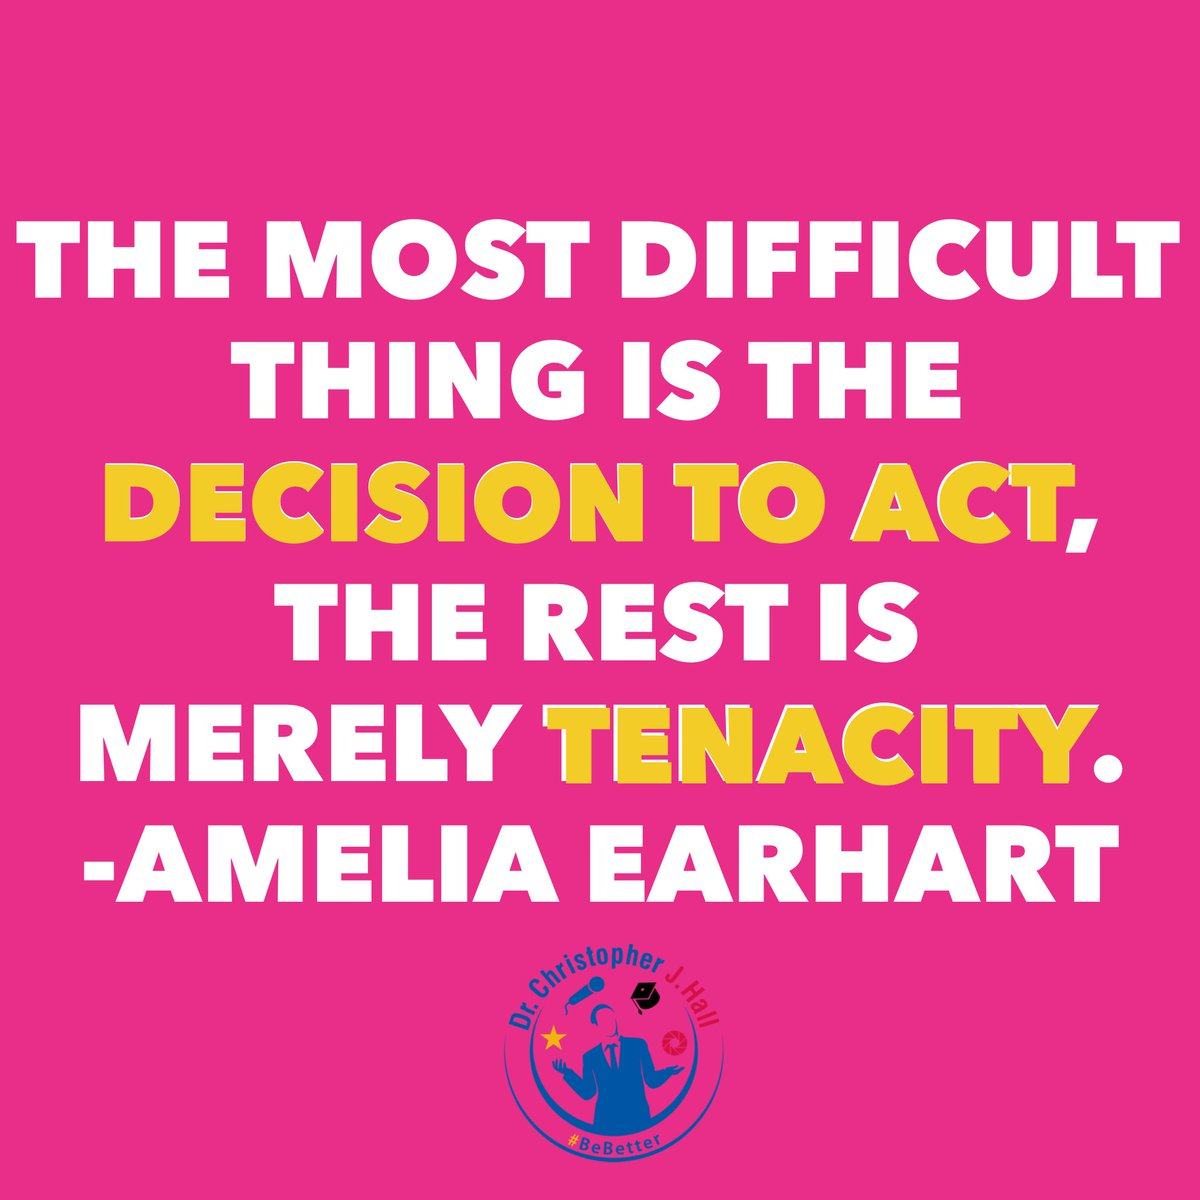 The most difficult thing is the decision to act, the rest is merely tenacity. Amelia Earhart . #decision #action #act #tenacity #womenshistorymonth #chrisjhall #motivation #inspiration #goals #success #leadership #grit #dreams #growth #ambition #resilience #entrepreneur